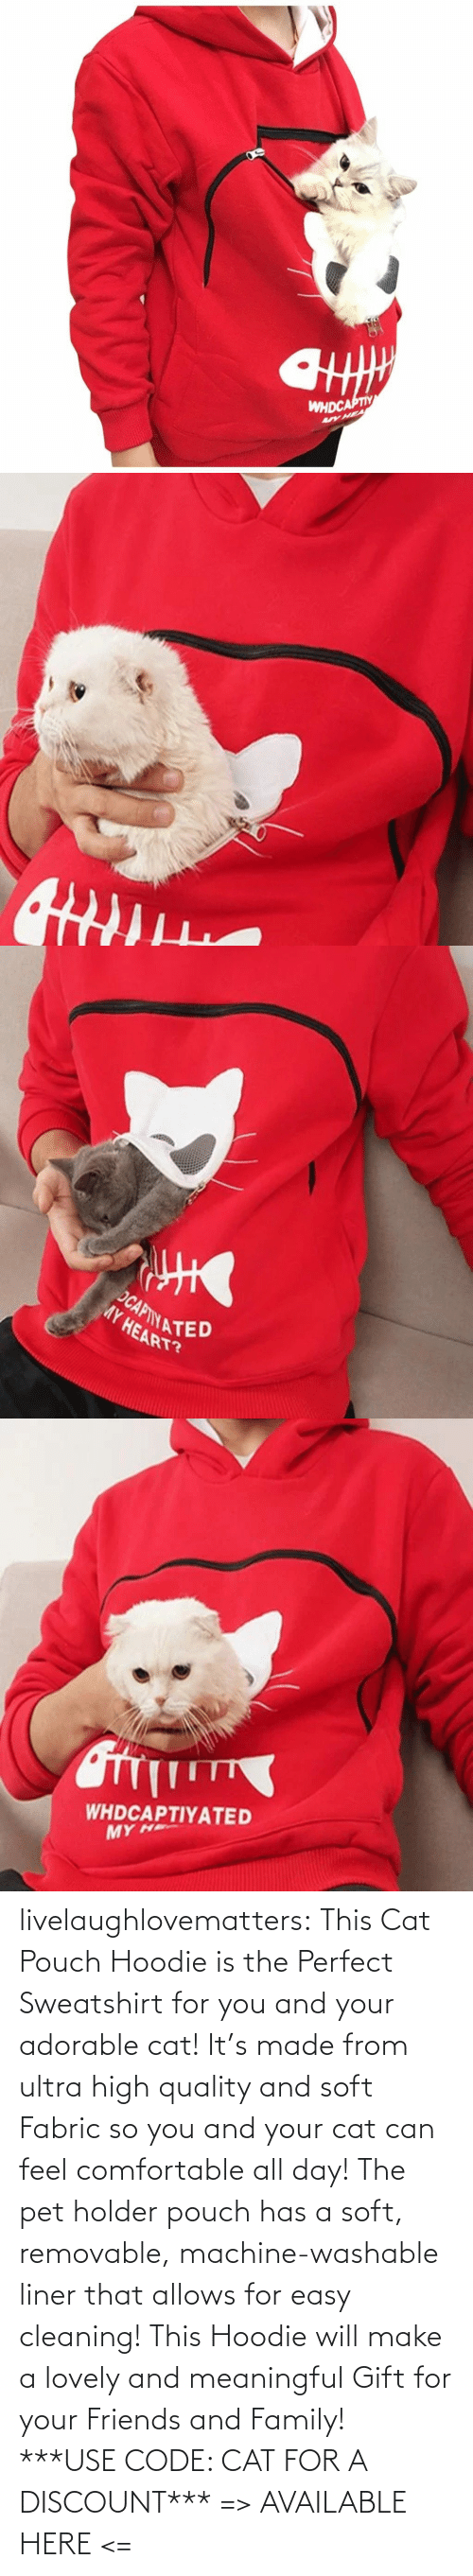 Here: livelaughlovematters: This Cat Pouch Hoodie is the Perfect Sweatshirt for you and your adorable cat! It's made from ultra high quality and soft Fabric so you and your cat can feel comfortable all day! The pet holder pouch has a soft, removable, machine-washable liner that allows for easy cleaning! This Hoodie will make a lovely and meaningful Gift for your Friends and Family!  ***USE CODE: CAT FOR A DISCOUNT*** => AVAILABLE HERE <=